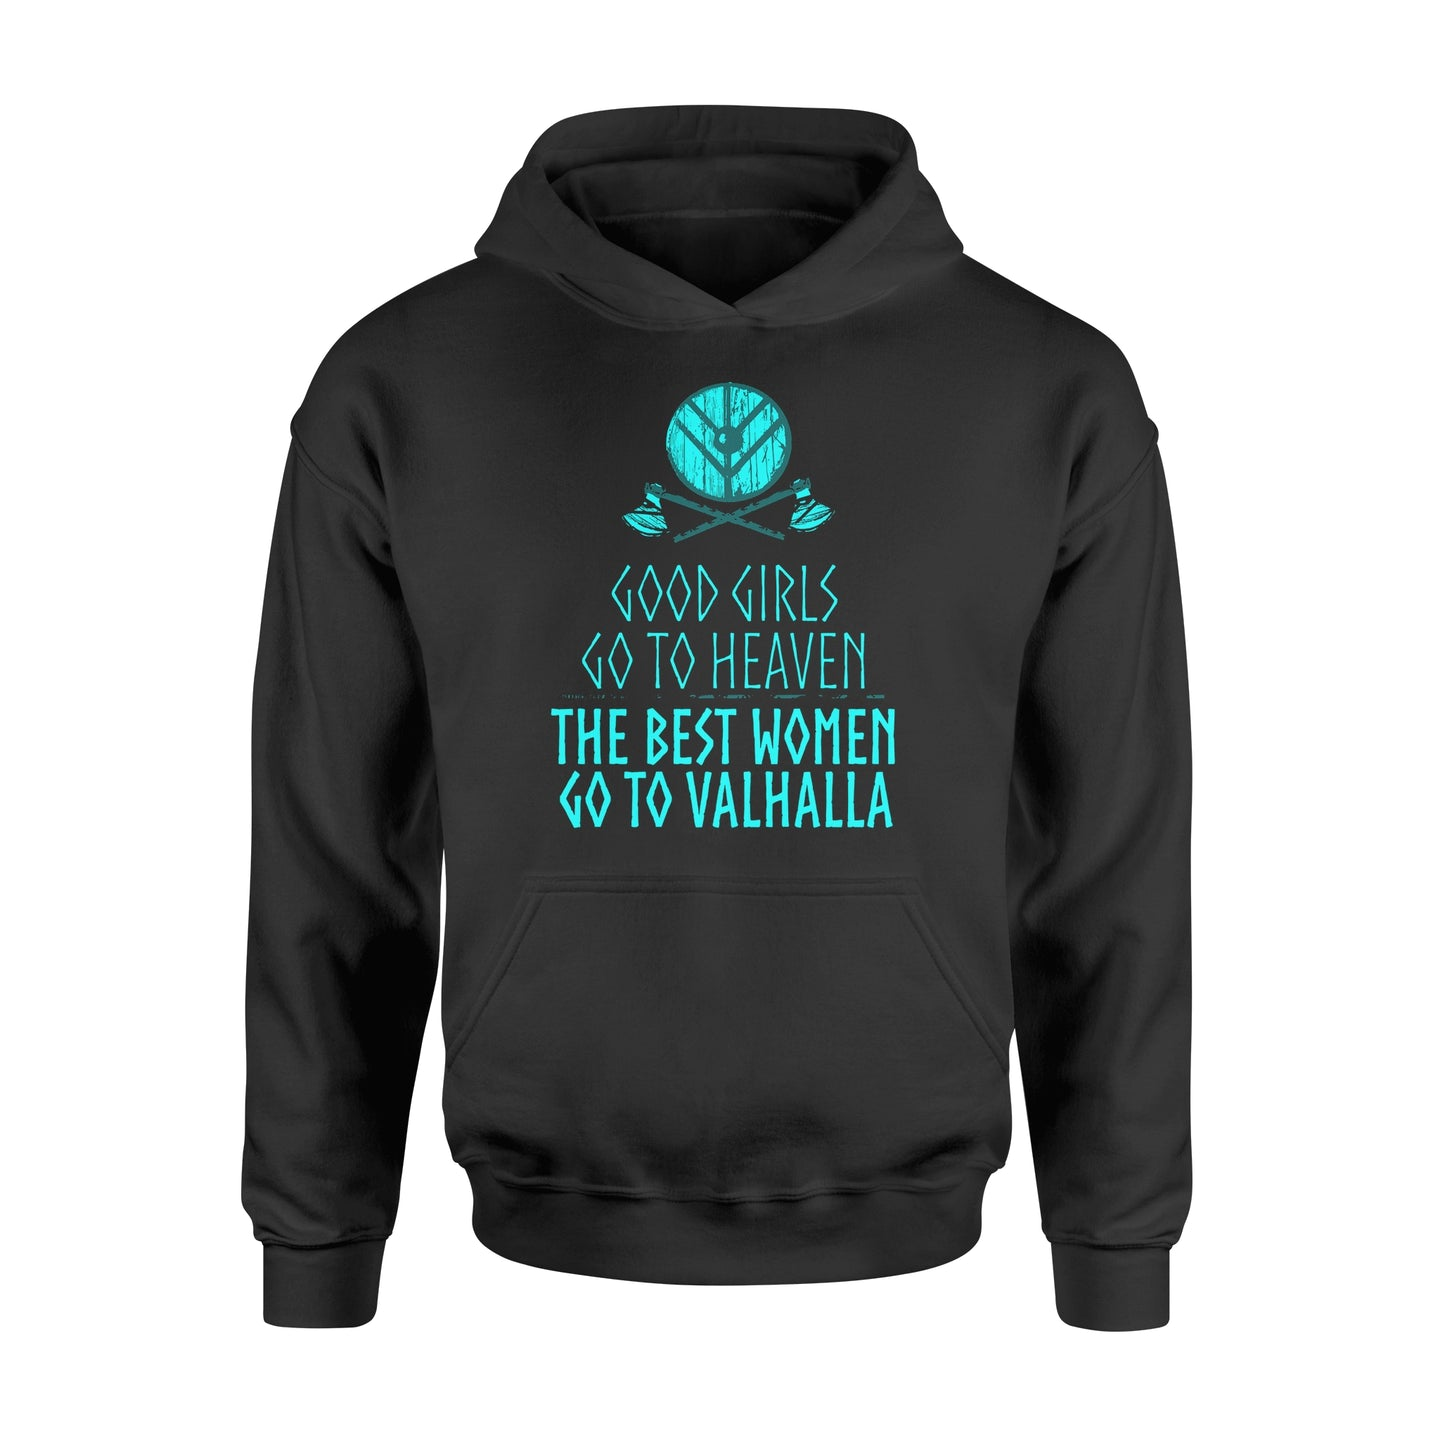 Good Girls Go To Heaven The Best Women Go To Valhalla - Standard Hoodie Apparel S / Black